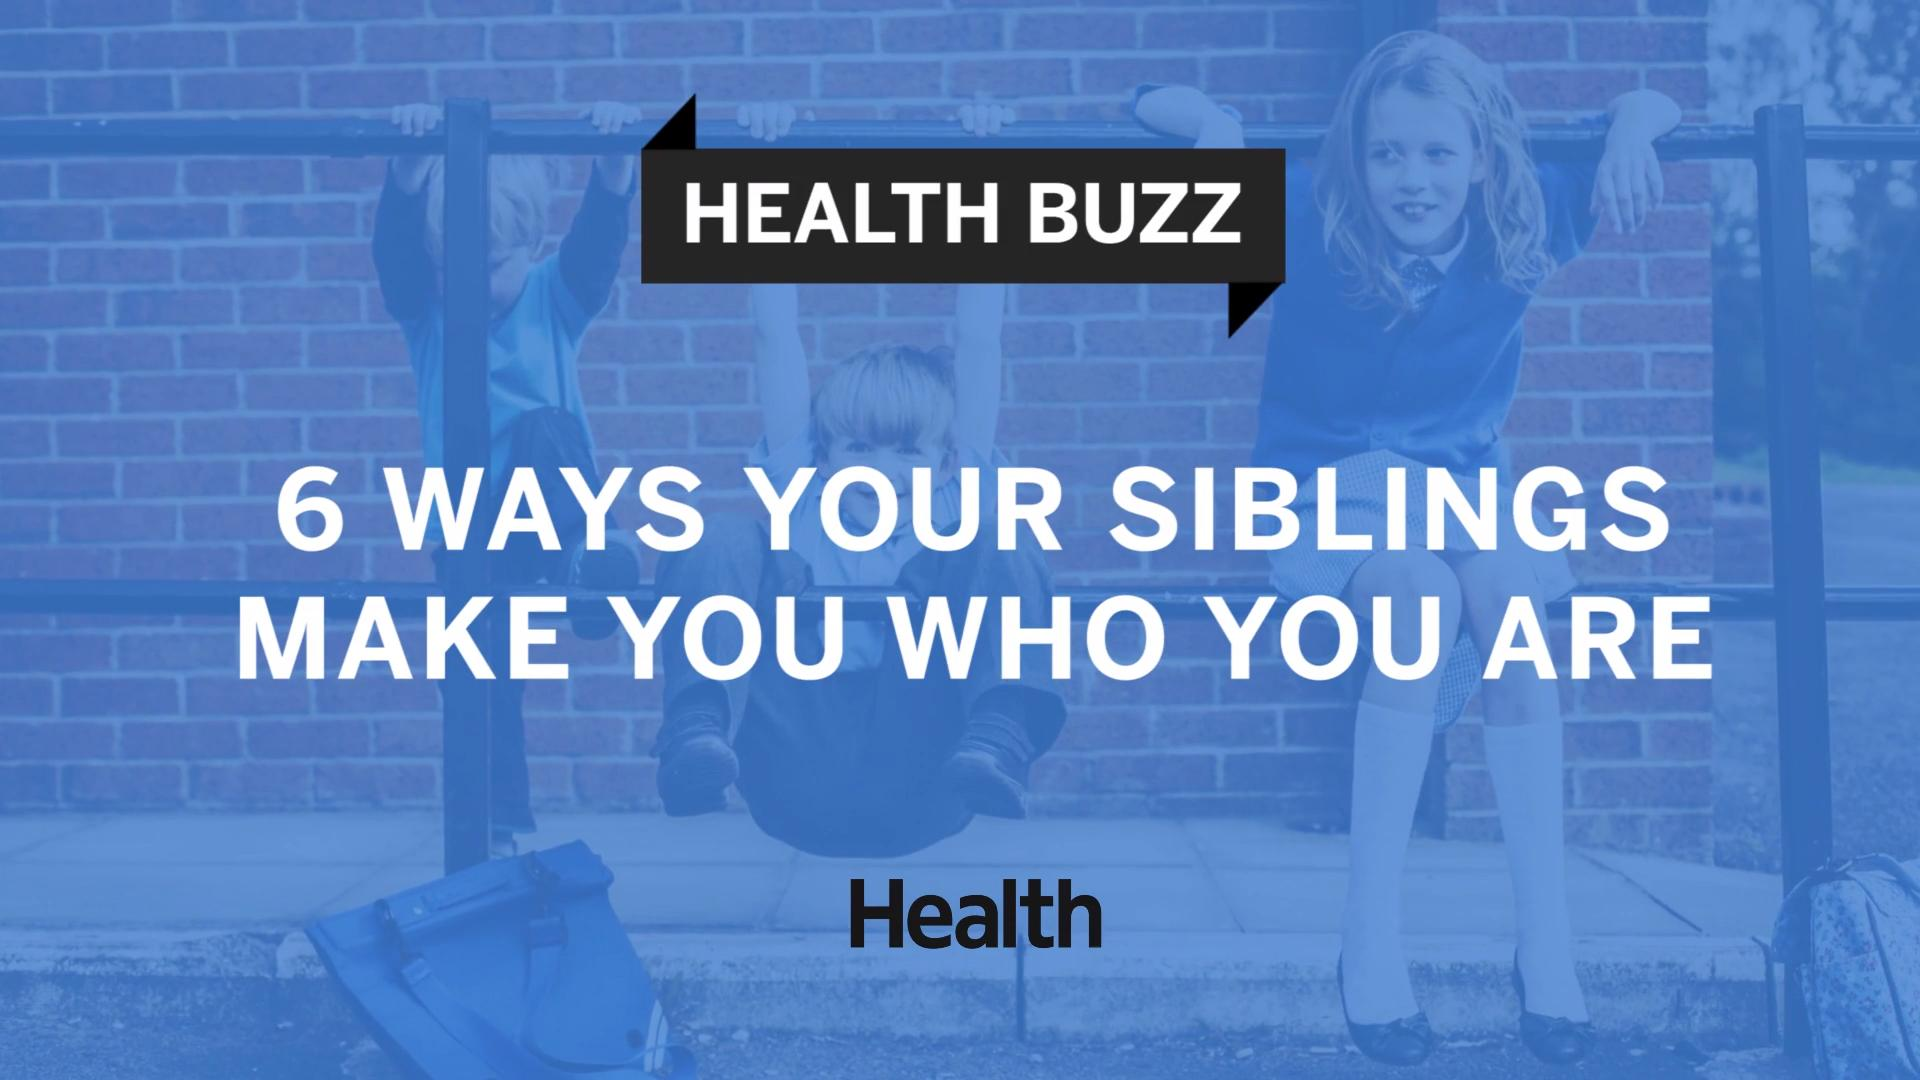 6 ways your siblings make you who you are - health